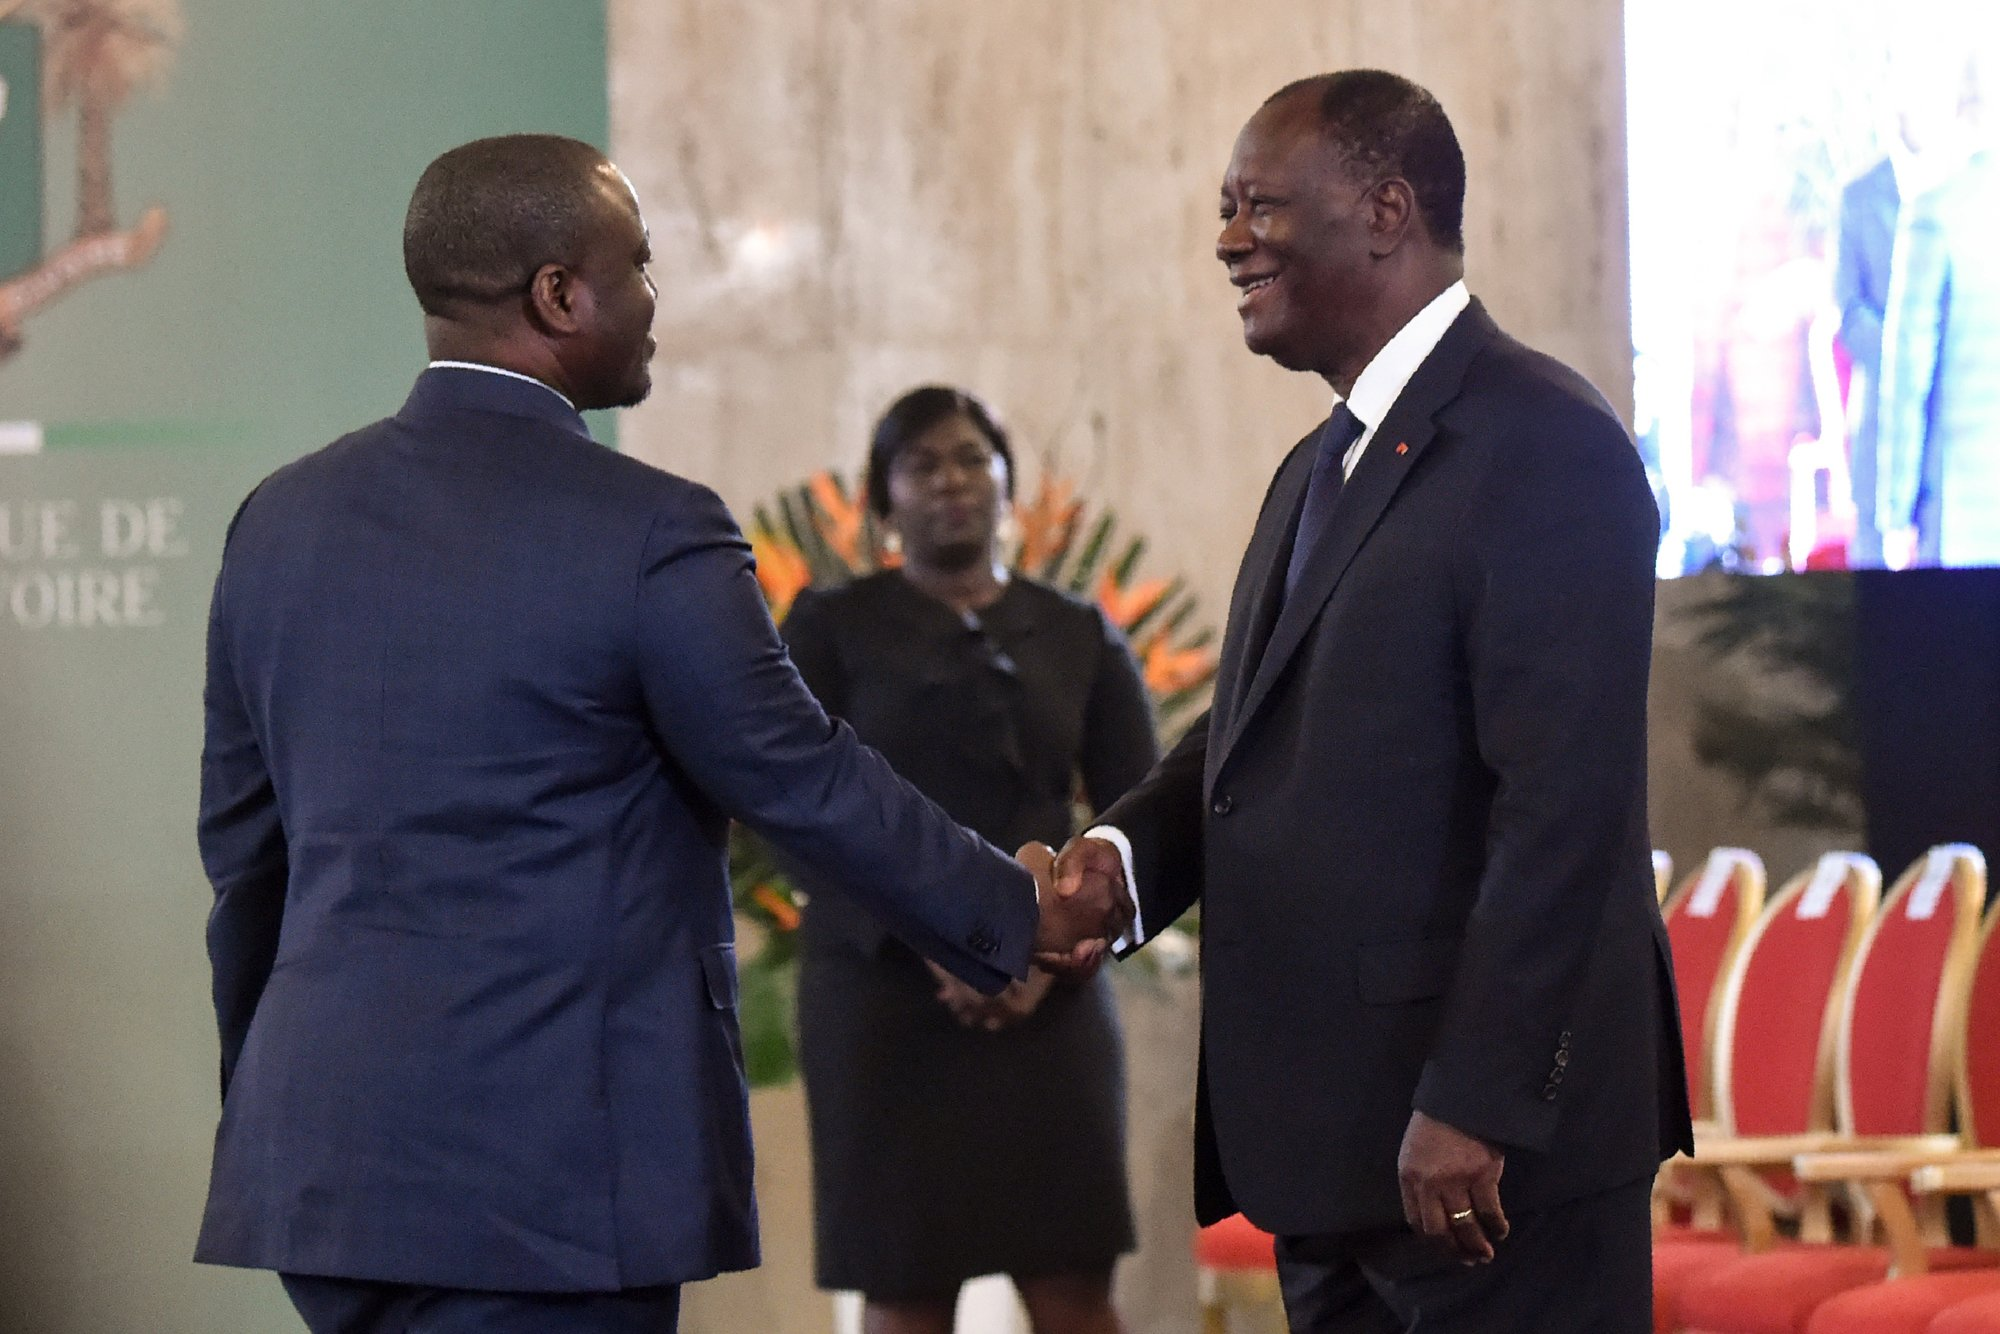 Ivory Coast's President Alassane Ouattara (R) shakes hands with Ivory Coast's National Assembly President Guillaume Soro (L) during a New Year wishes ceremony at the presidential palace in Abidjan on January 4, 2018. (Photo by SIA KAMBOU / AFP)